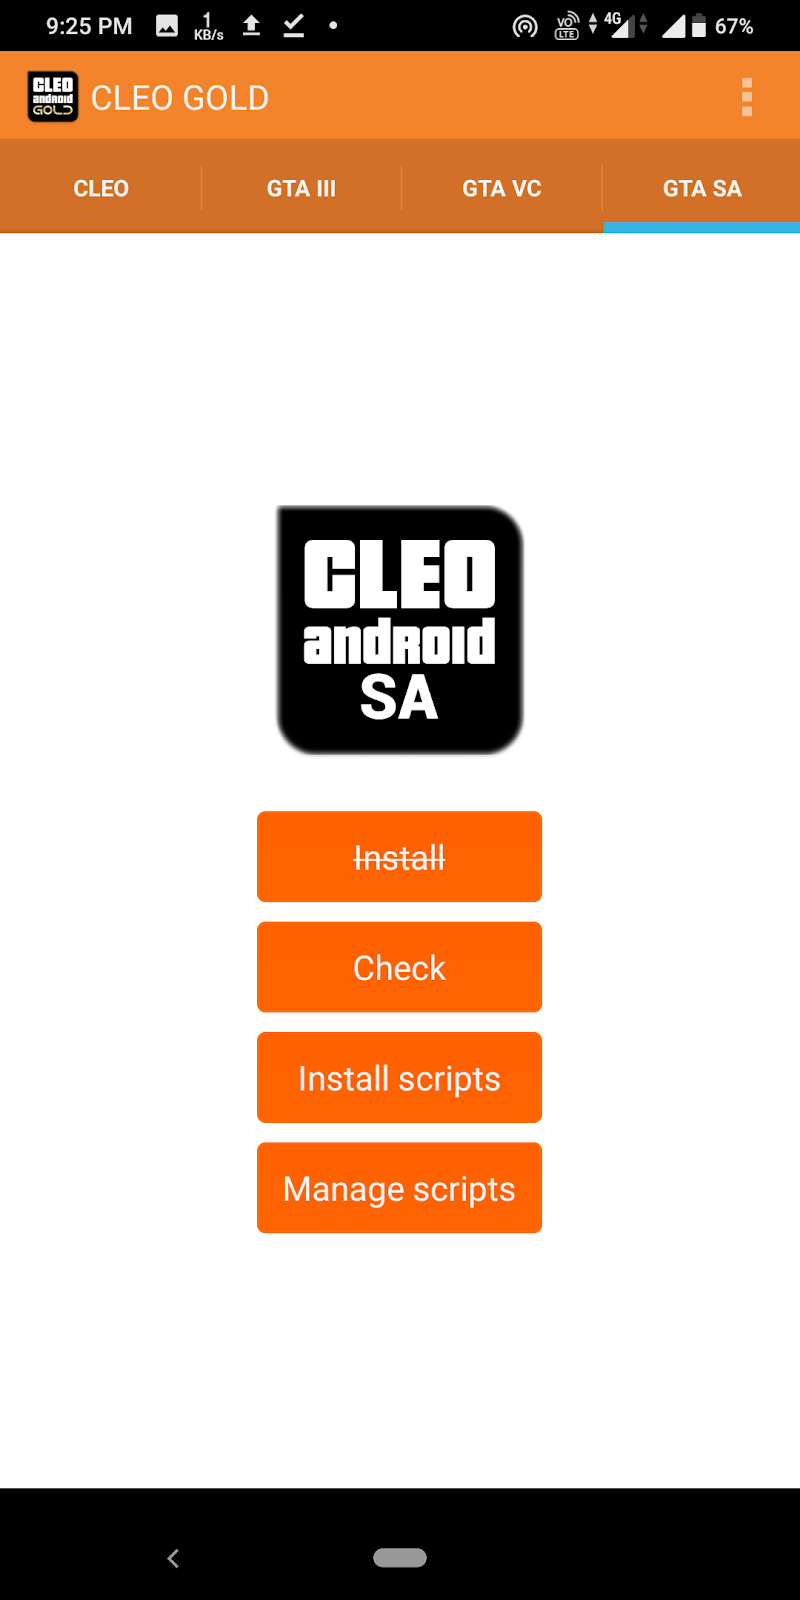 gta sa cleo gold apk no root 1.08 download